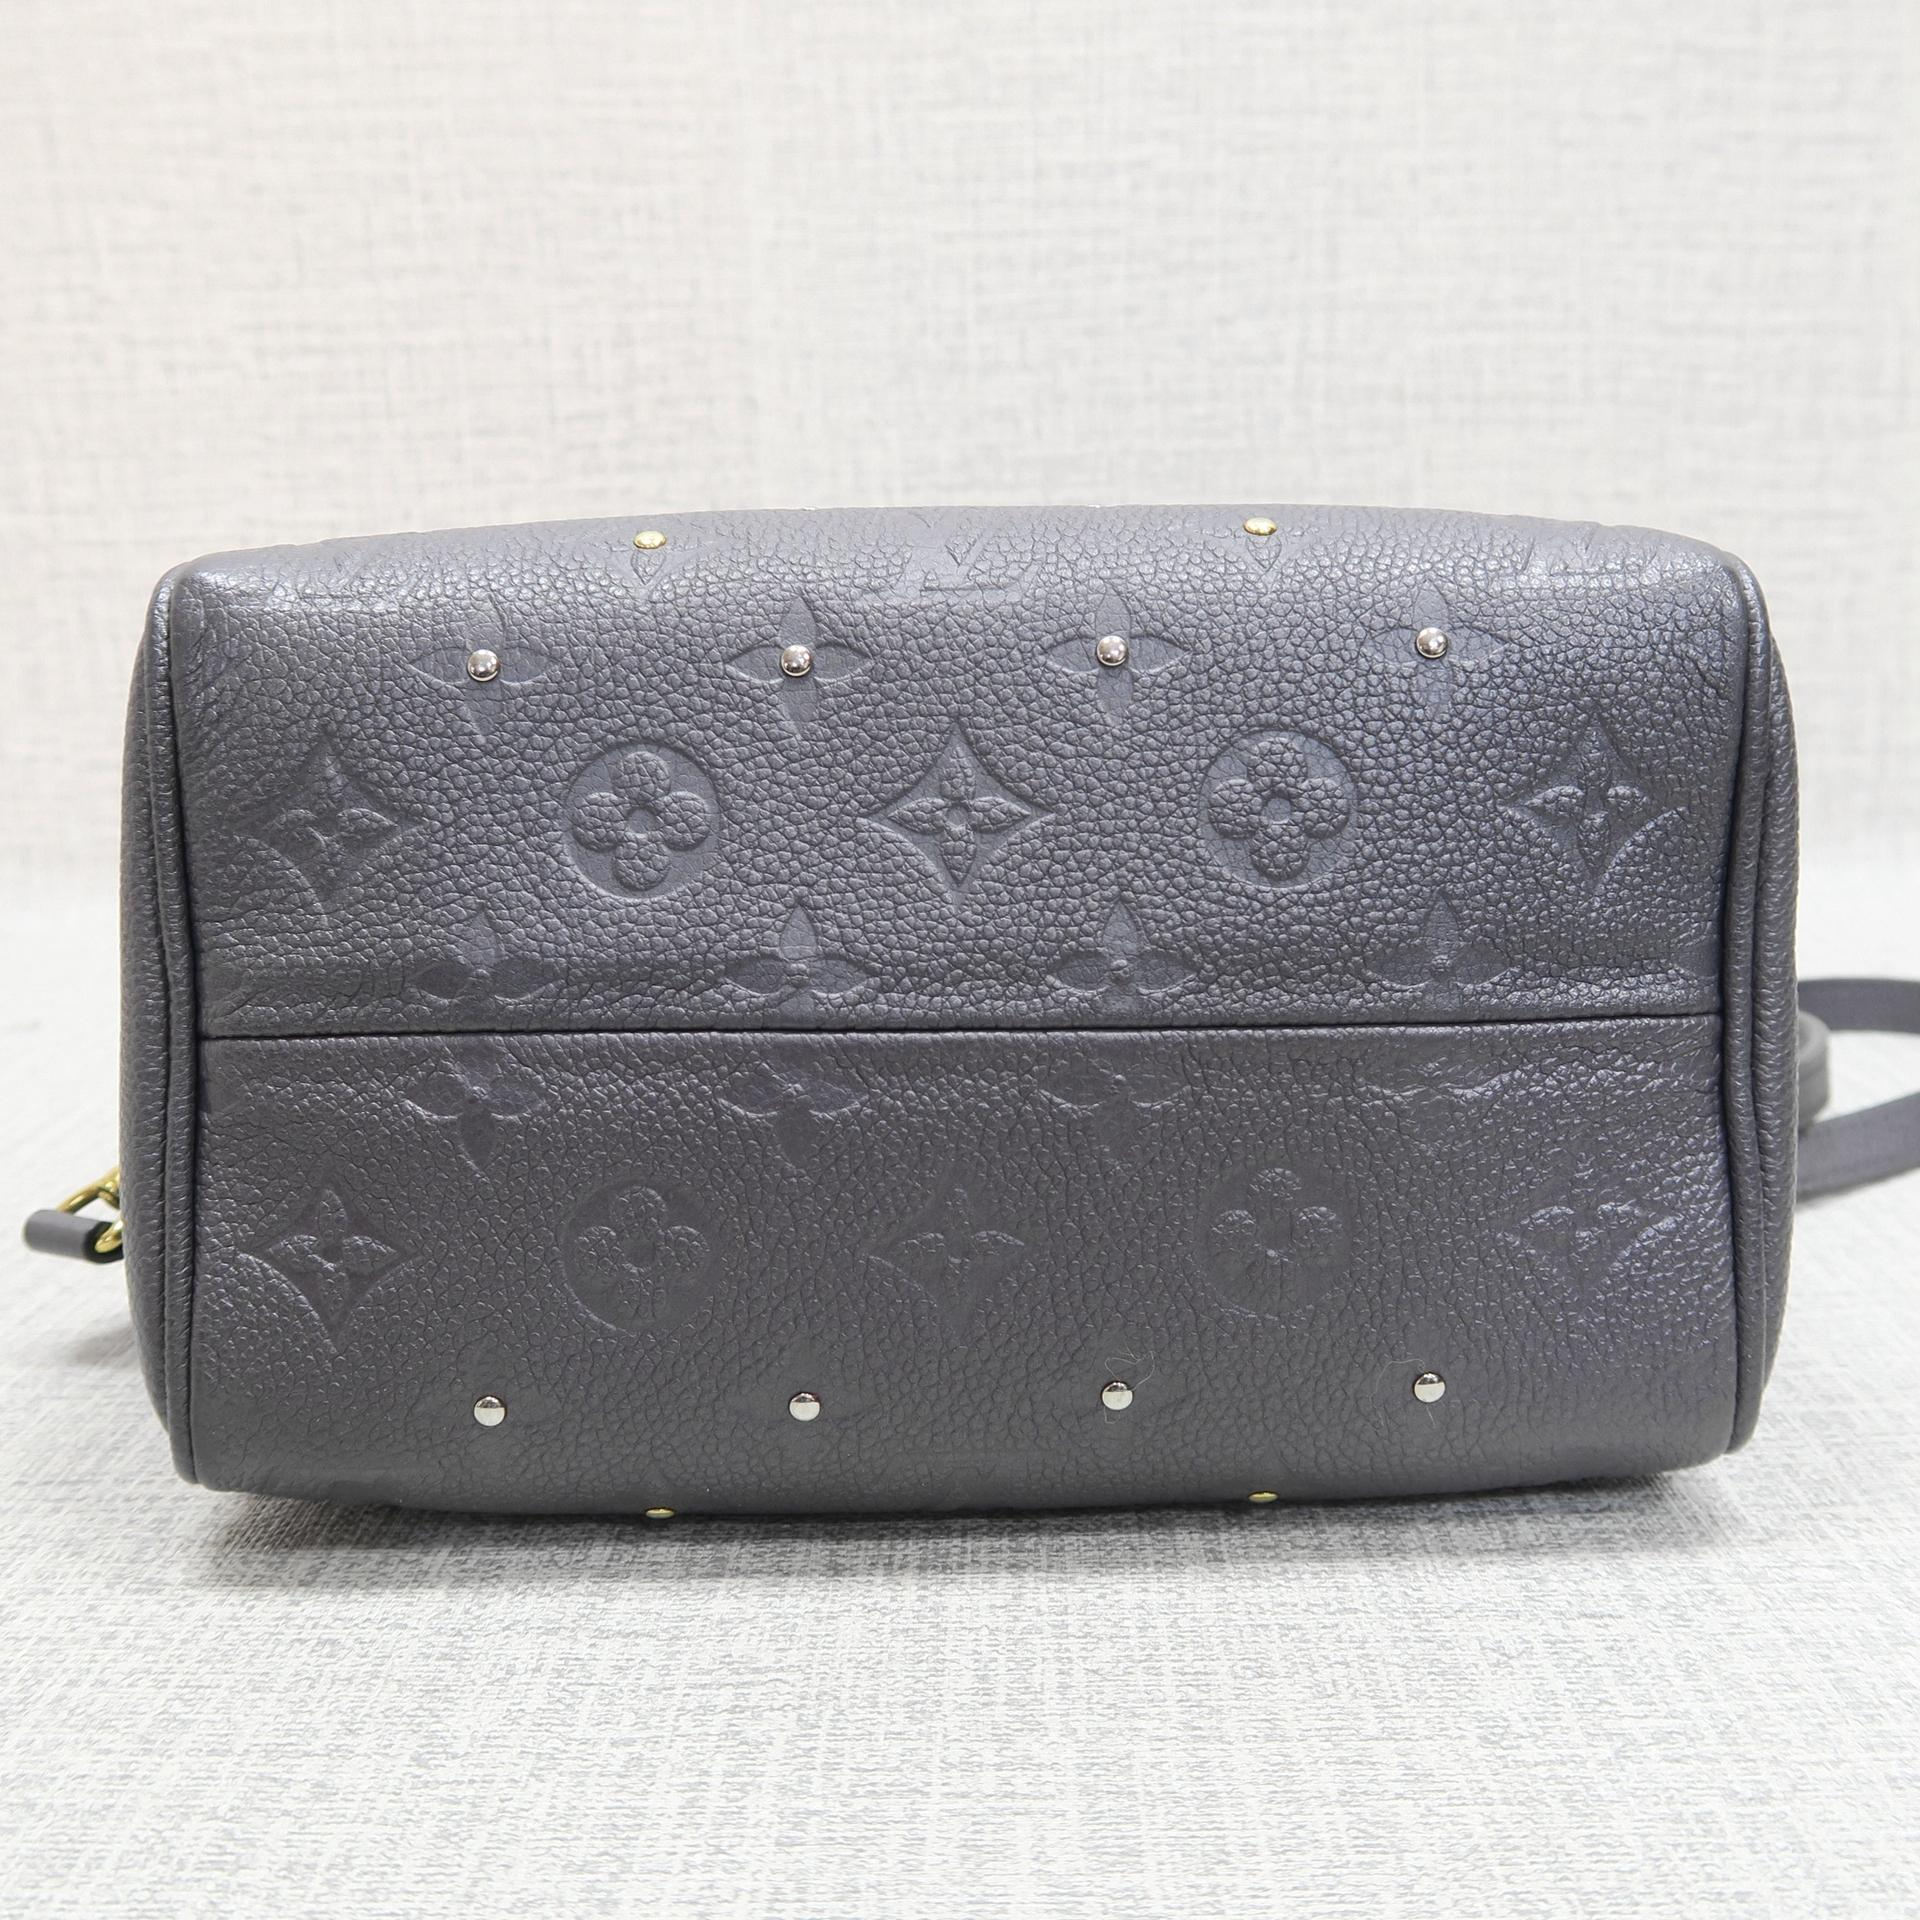 Louis vuitton speedy 25 empreinte price